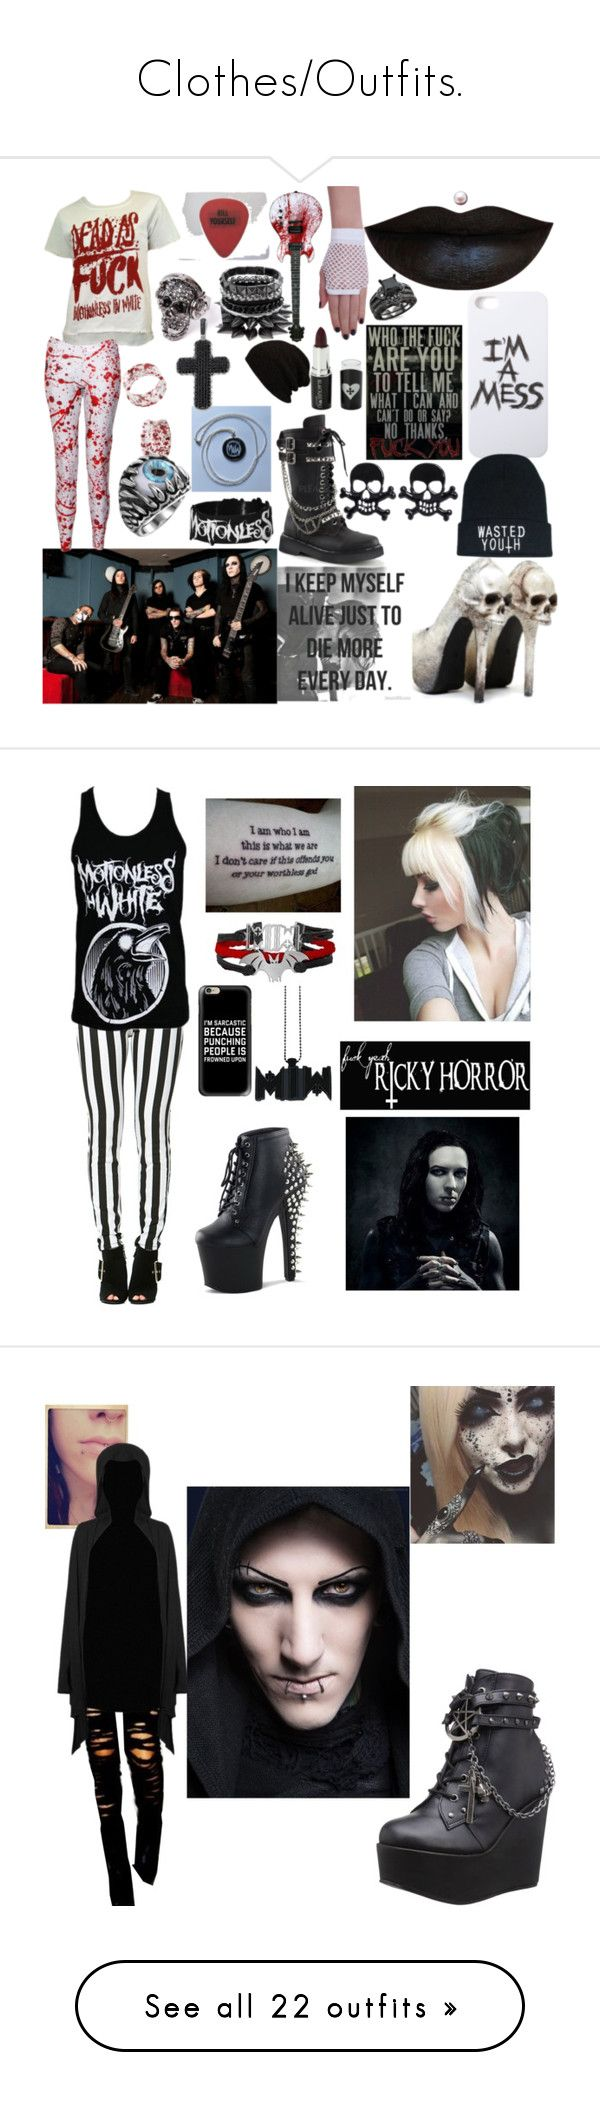 """""""Clothes/Outfits."""" by alexahudgins ❤ liked on Polyvore featuring LAUREN MOSHI, Demonia, S.W.O.R.D., Voom, David Yurman, White Raven, Olsen, Sykes, Casetify and Poizen Industries"""